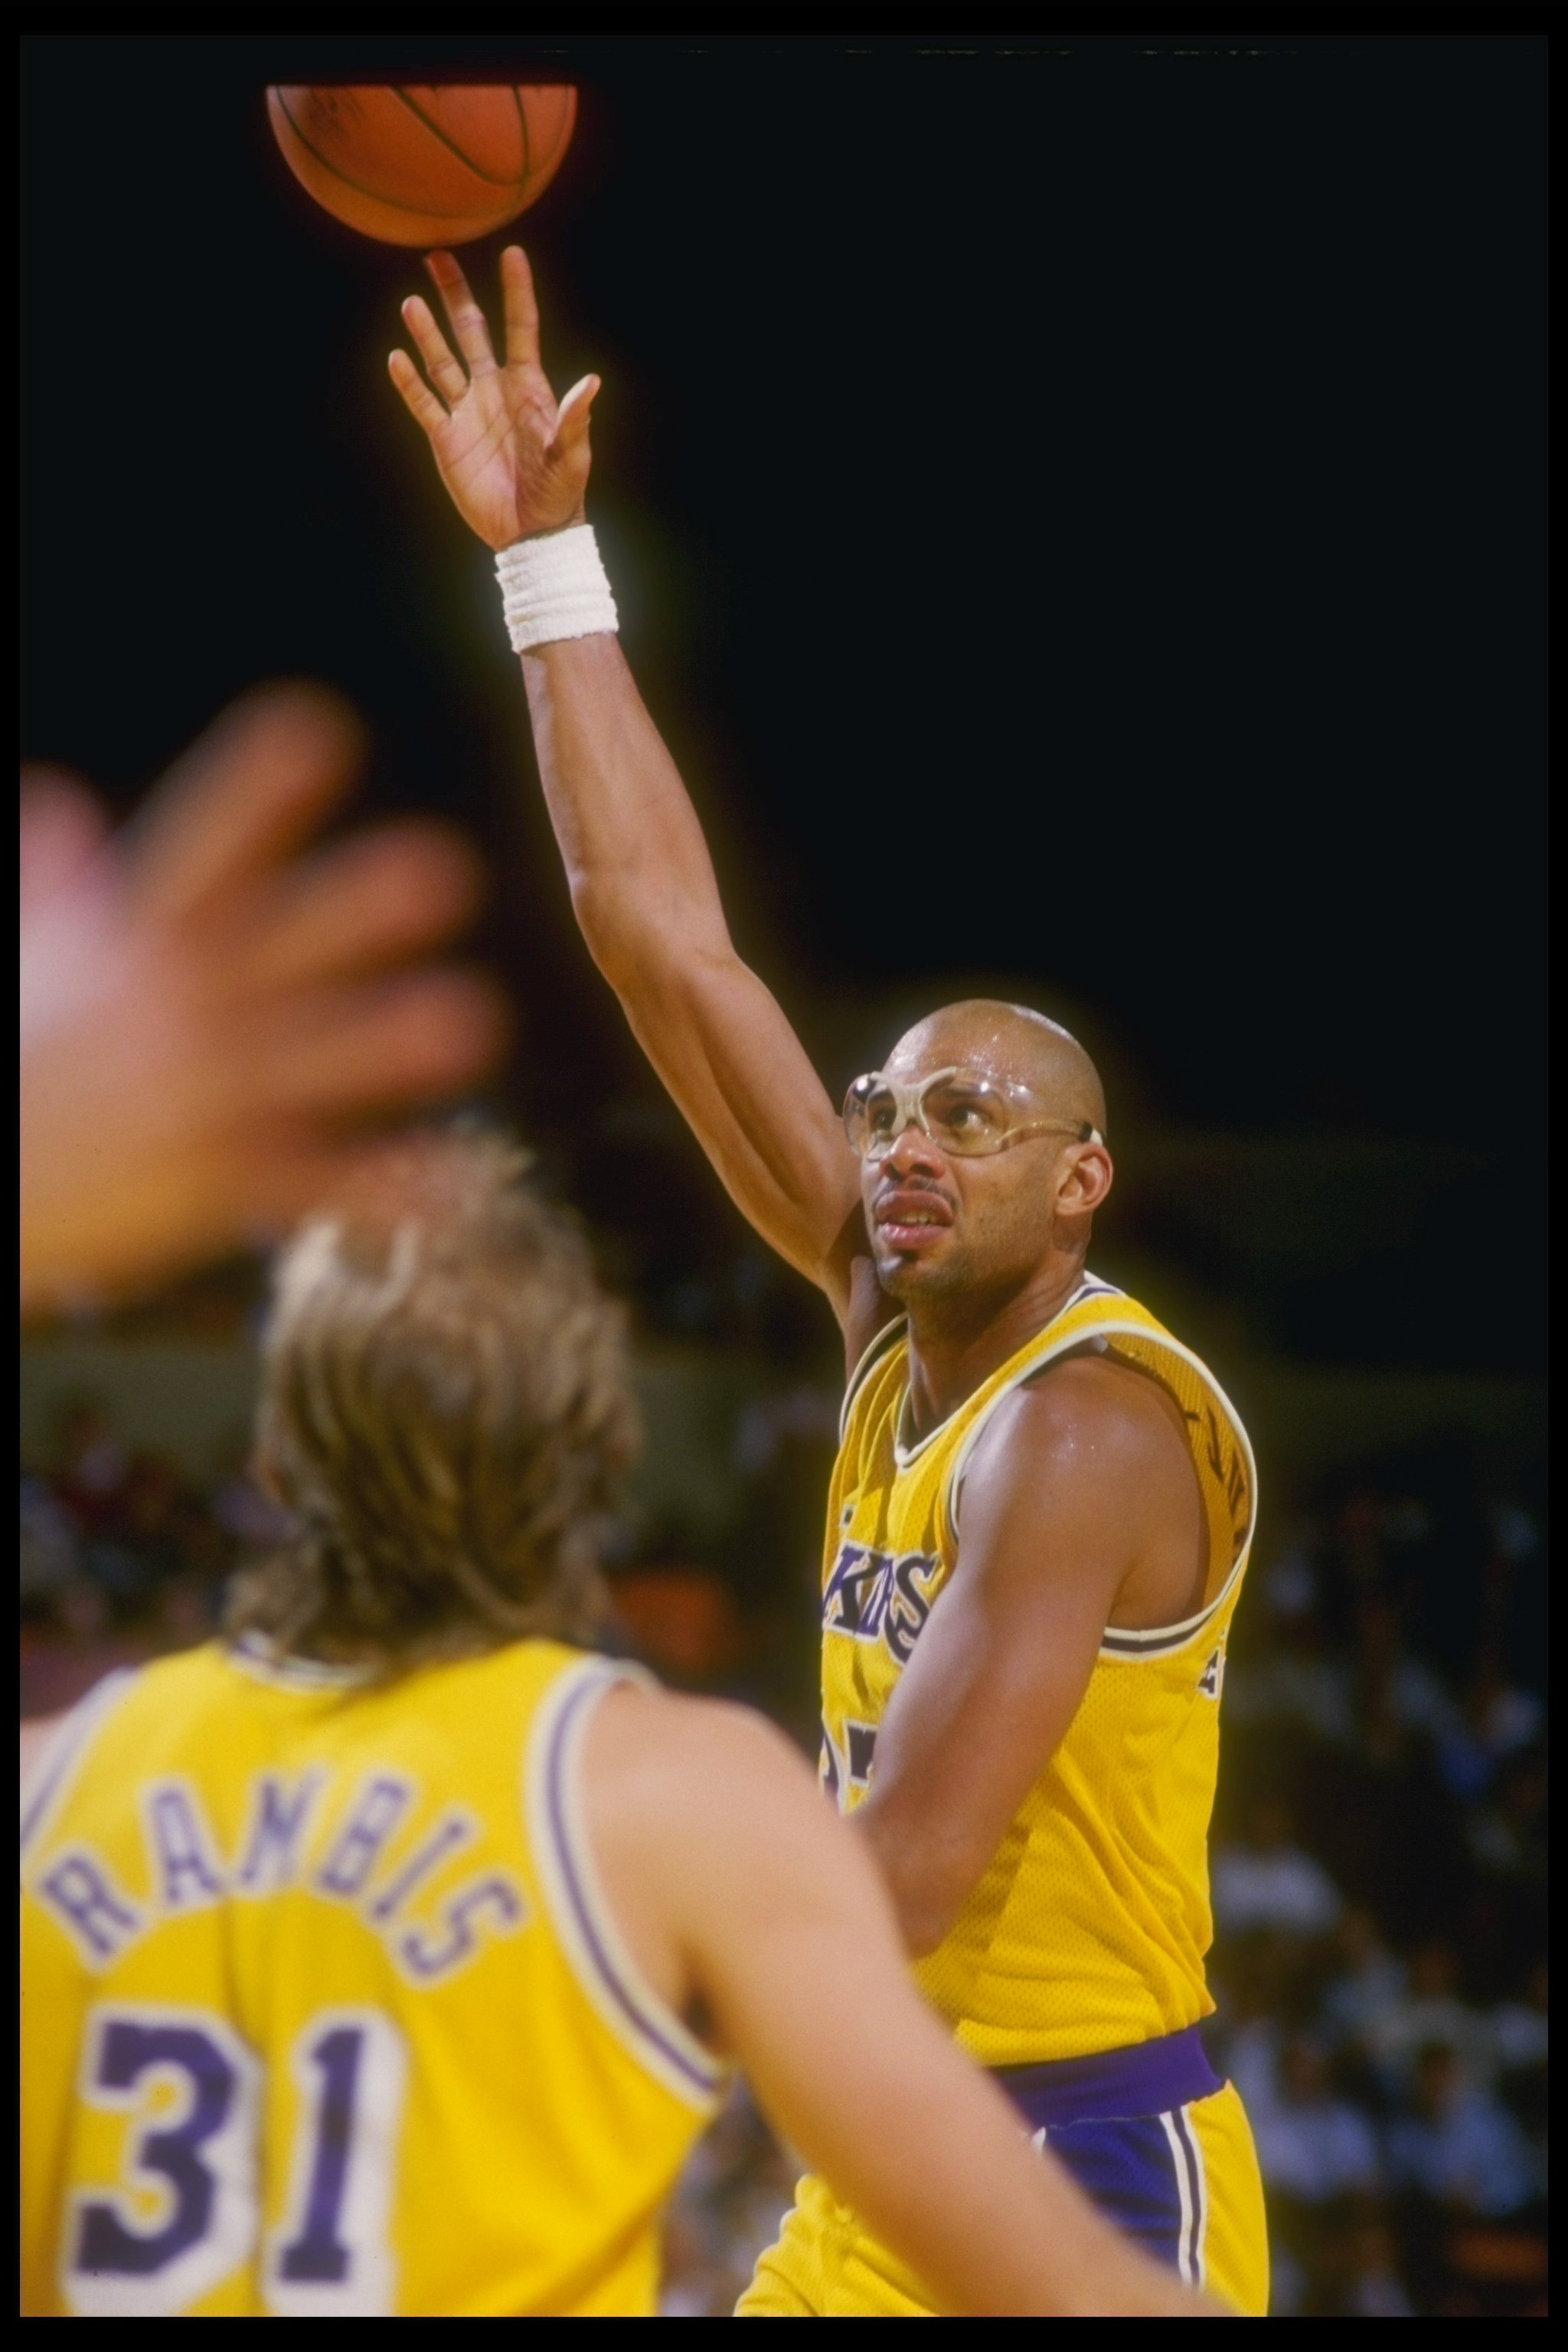 Nov 1987:  Center Kareem Abdul-Jabbar of the Los Angeles Lakers shoots the ball during a game against the Portland Trailblazers at the Great Western Forum in Inglewood, California. Mandatory Credit: Mike Powell  /Allsport